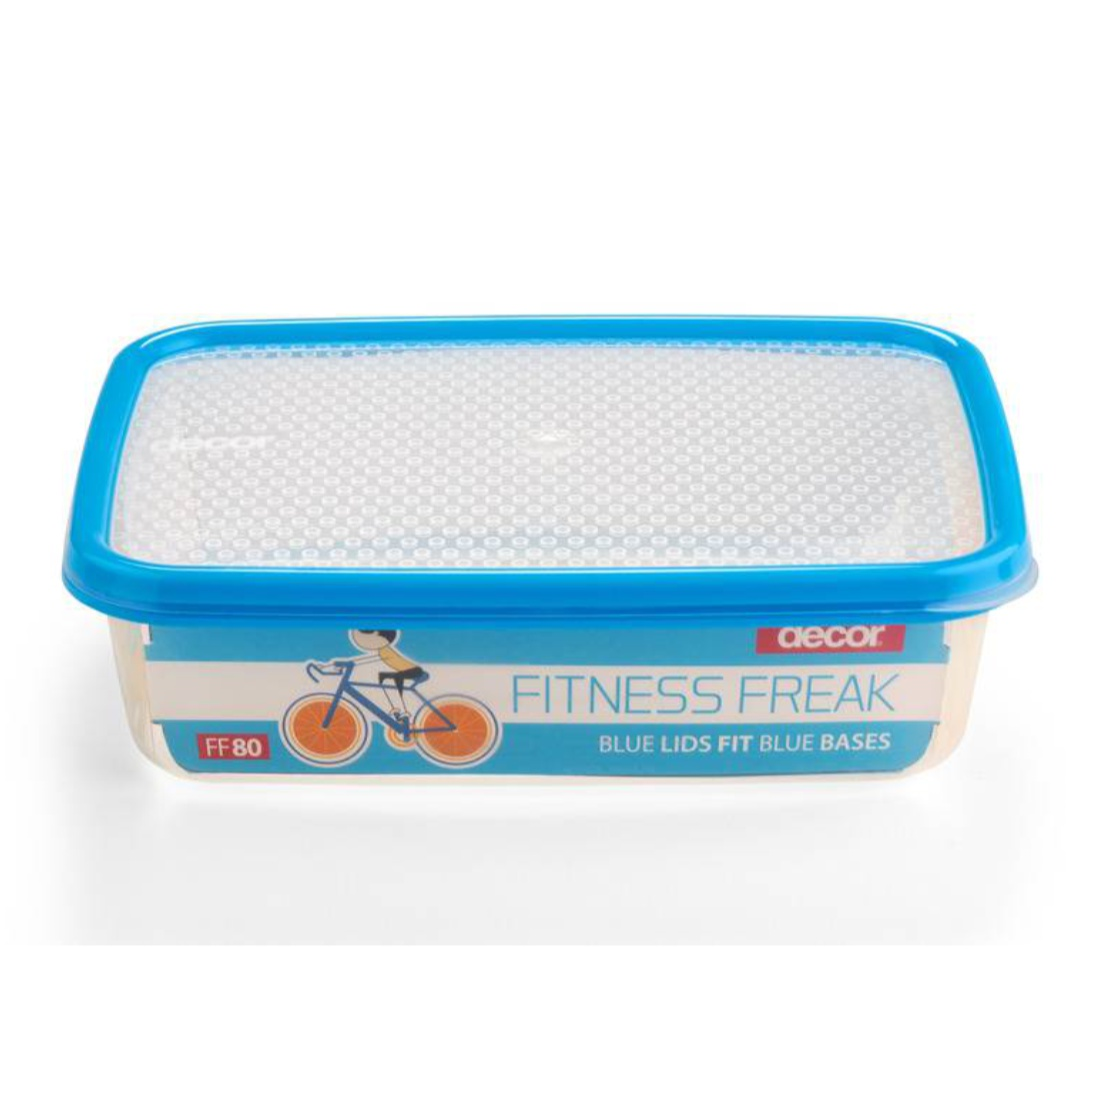 Fitness Freak 80 2.0L Glass Containers by Decor